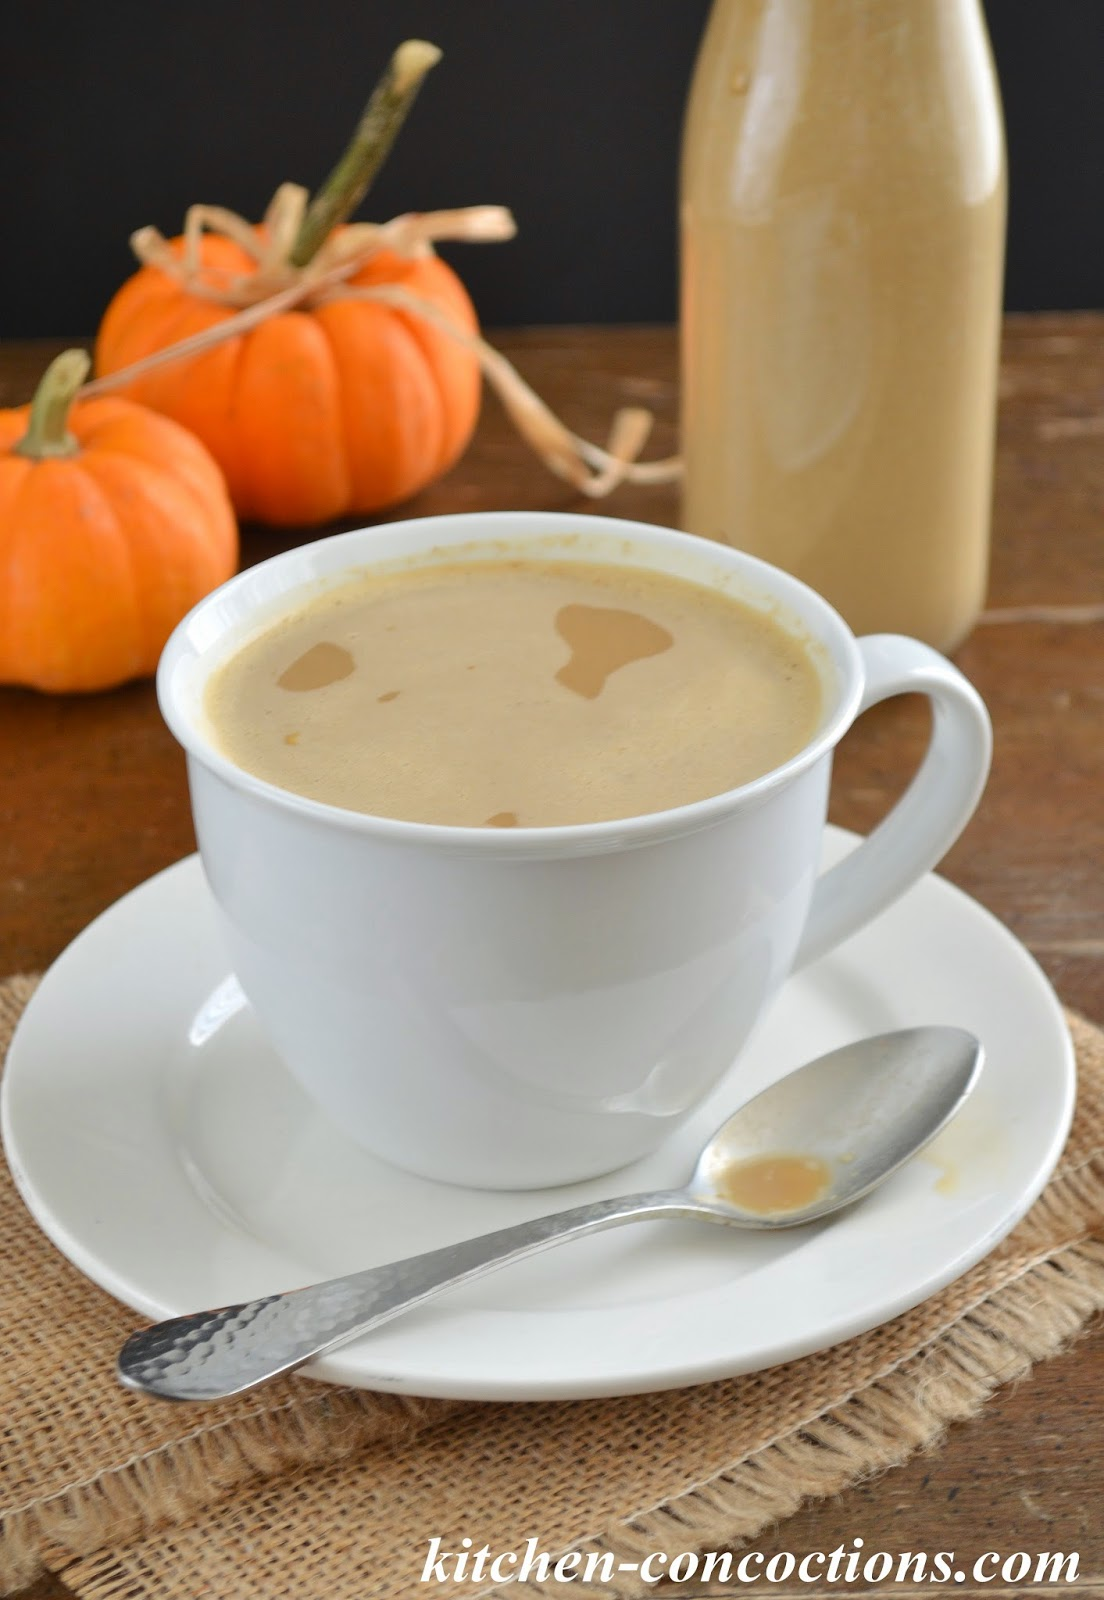 Homemade {Healthier} Pumpkin Spice Coffee Creamer by Heather H. of Kitchen Concoctions: www.kitchen-concoctions.com · Printable Version